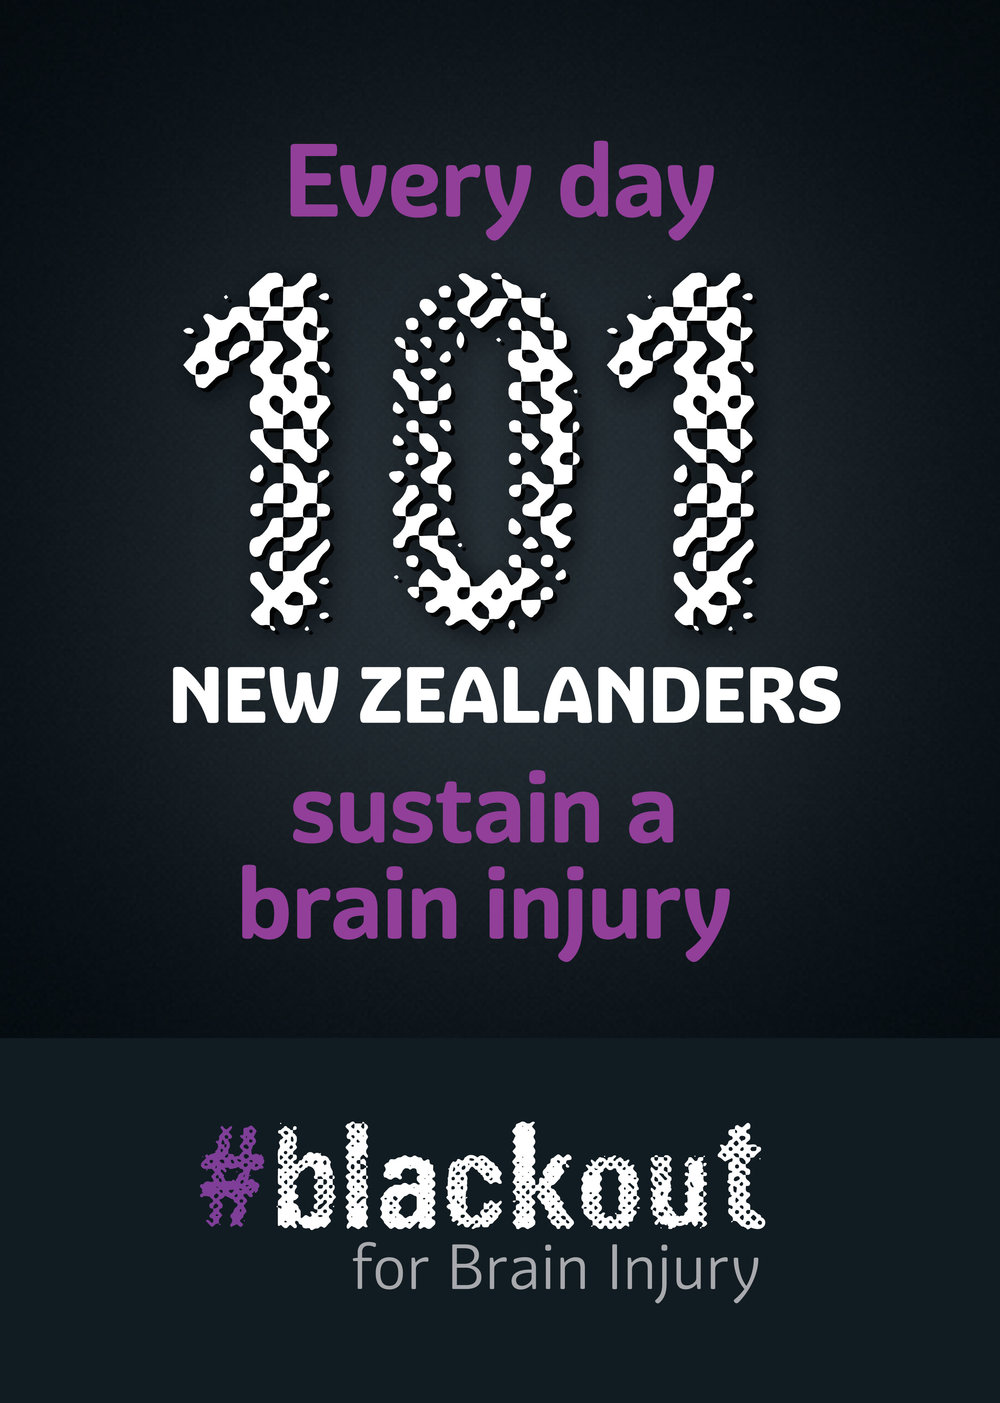 Blackout posters-1.jpg